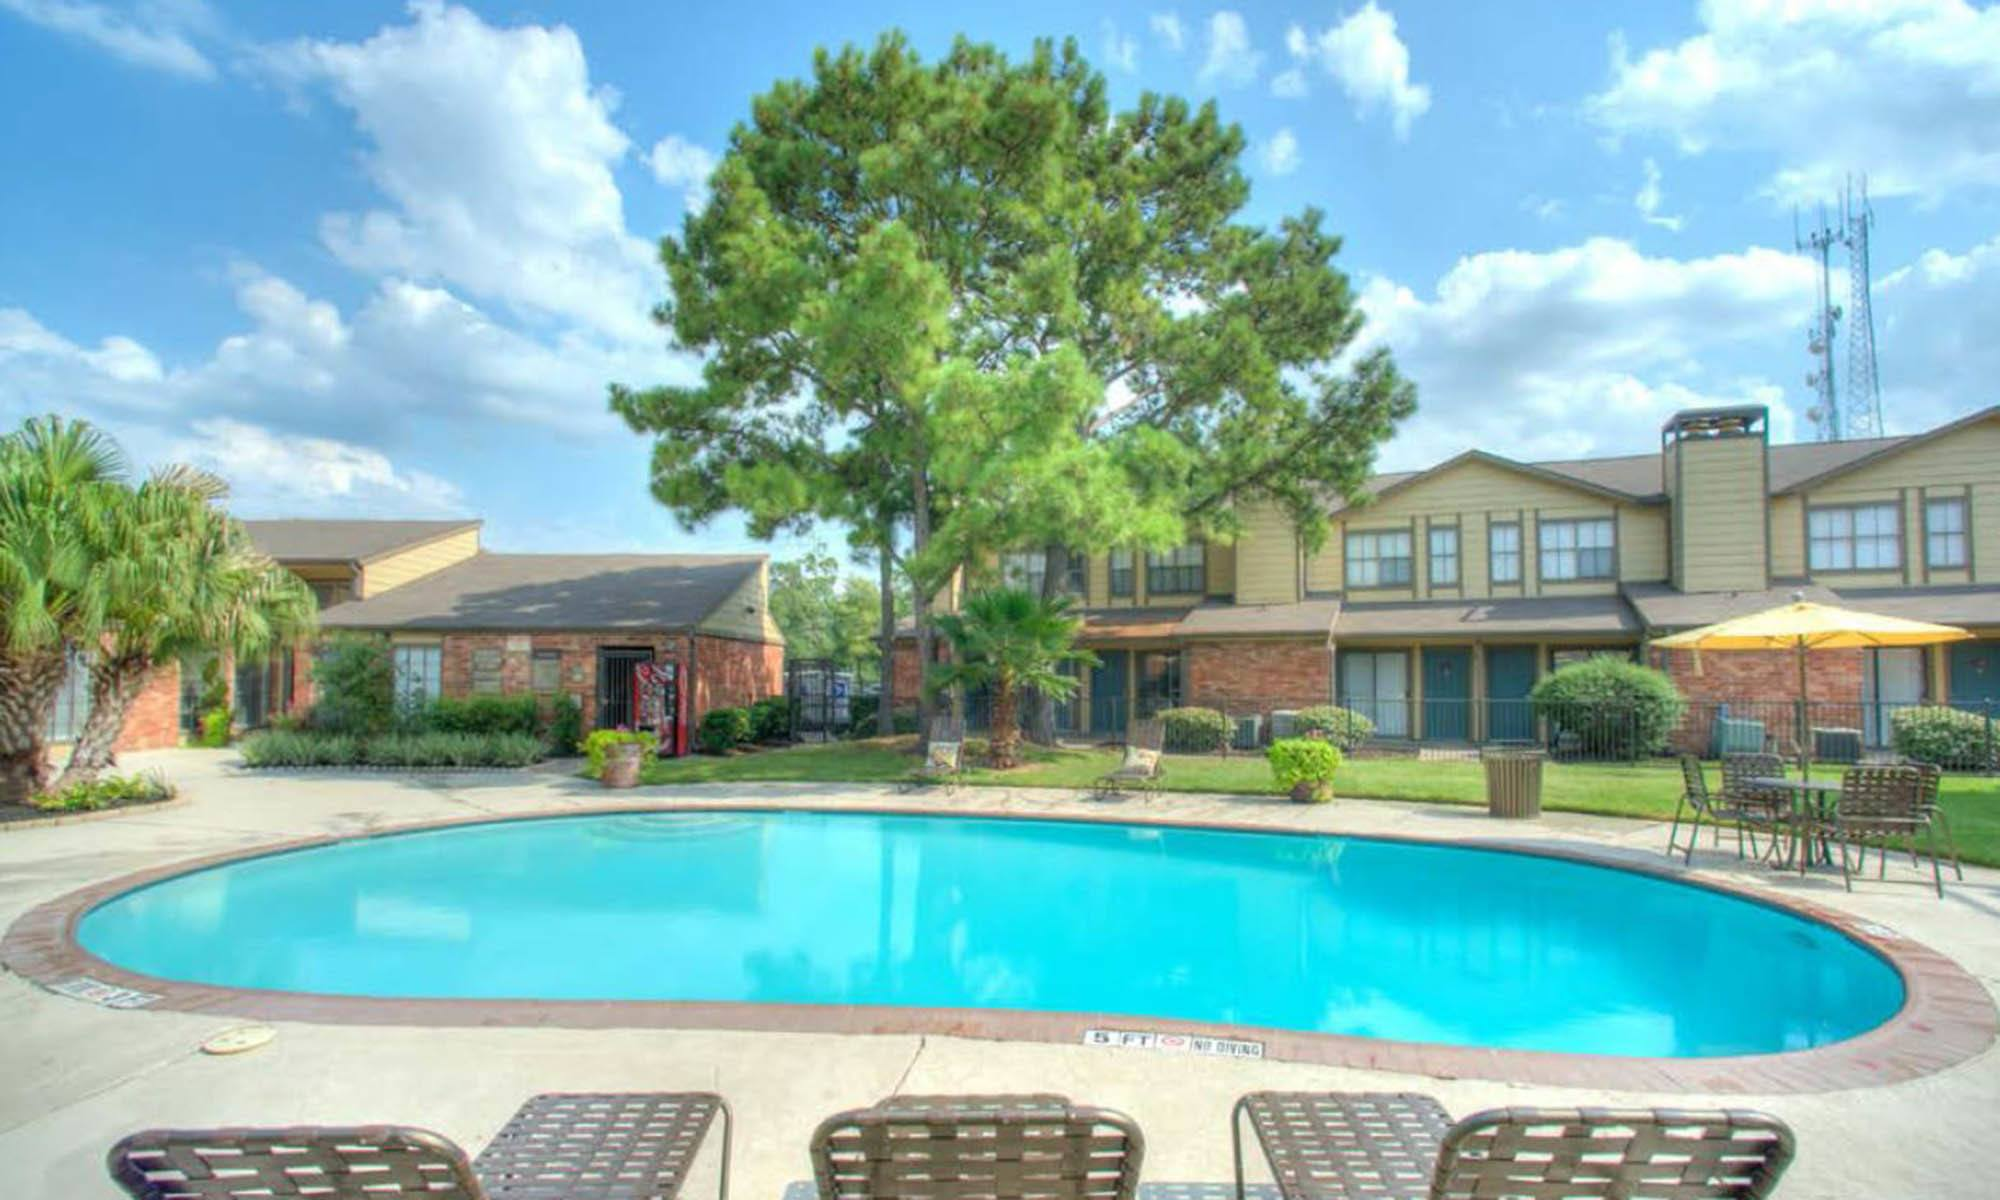 east houston, tx apartments for rent | dover pointe